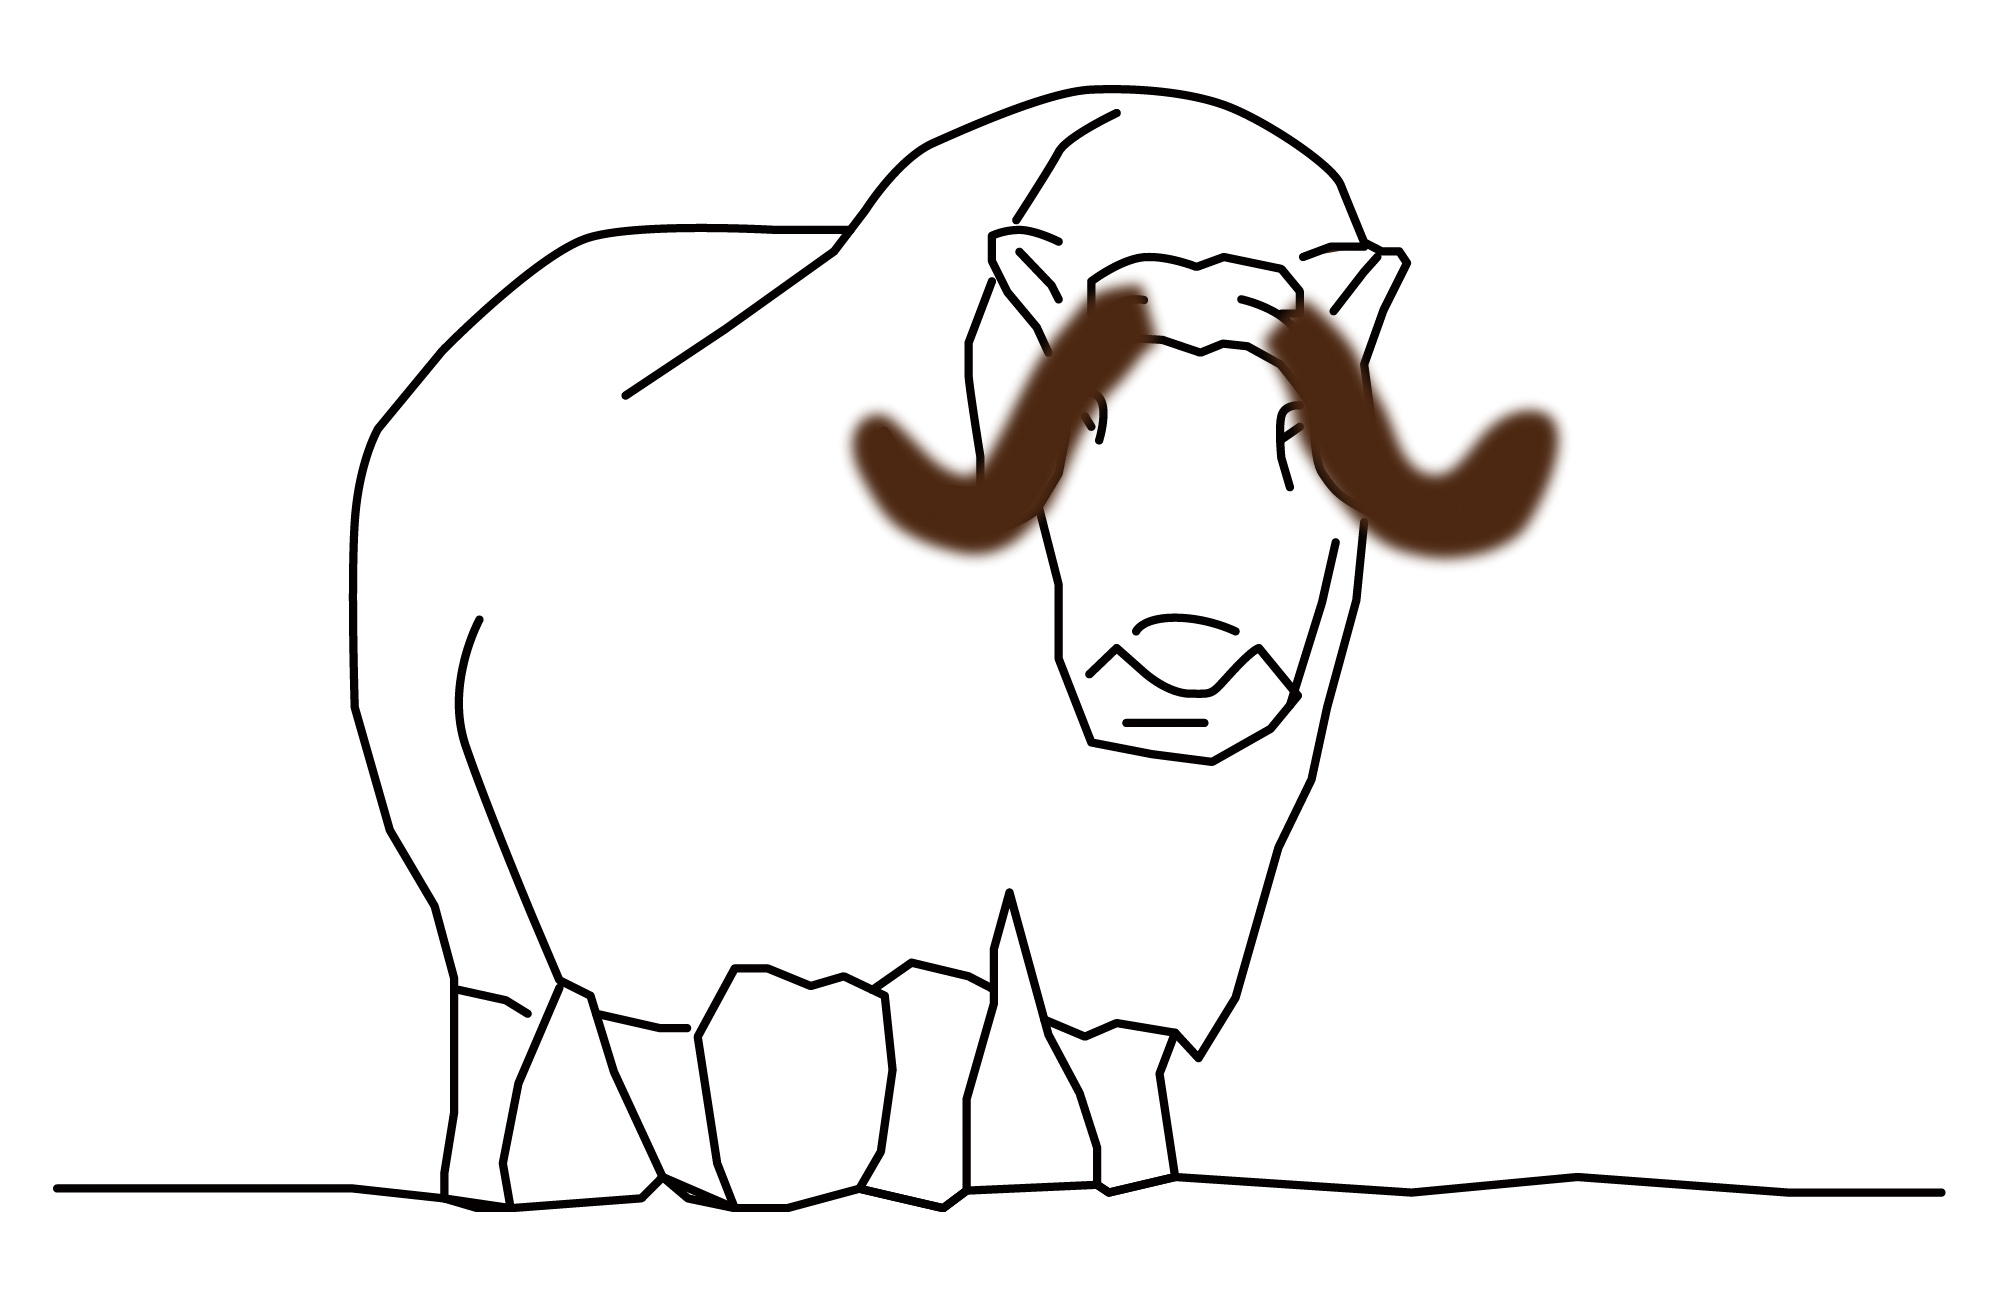 Image:<p>Drawing for 'Kitting horn cover for a muskox', 2020</p>